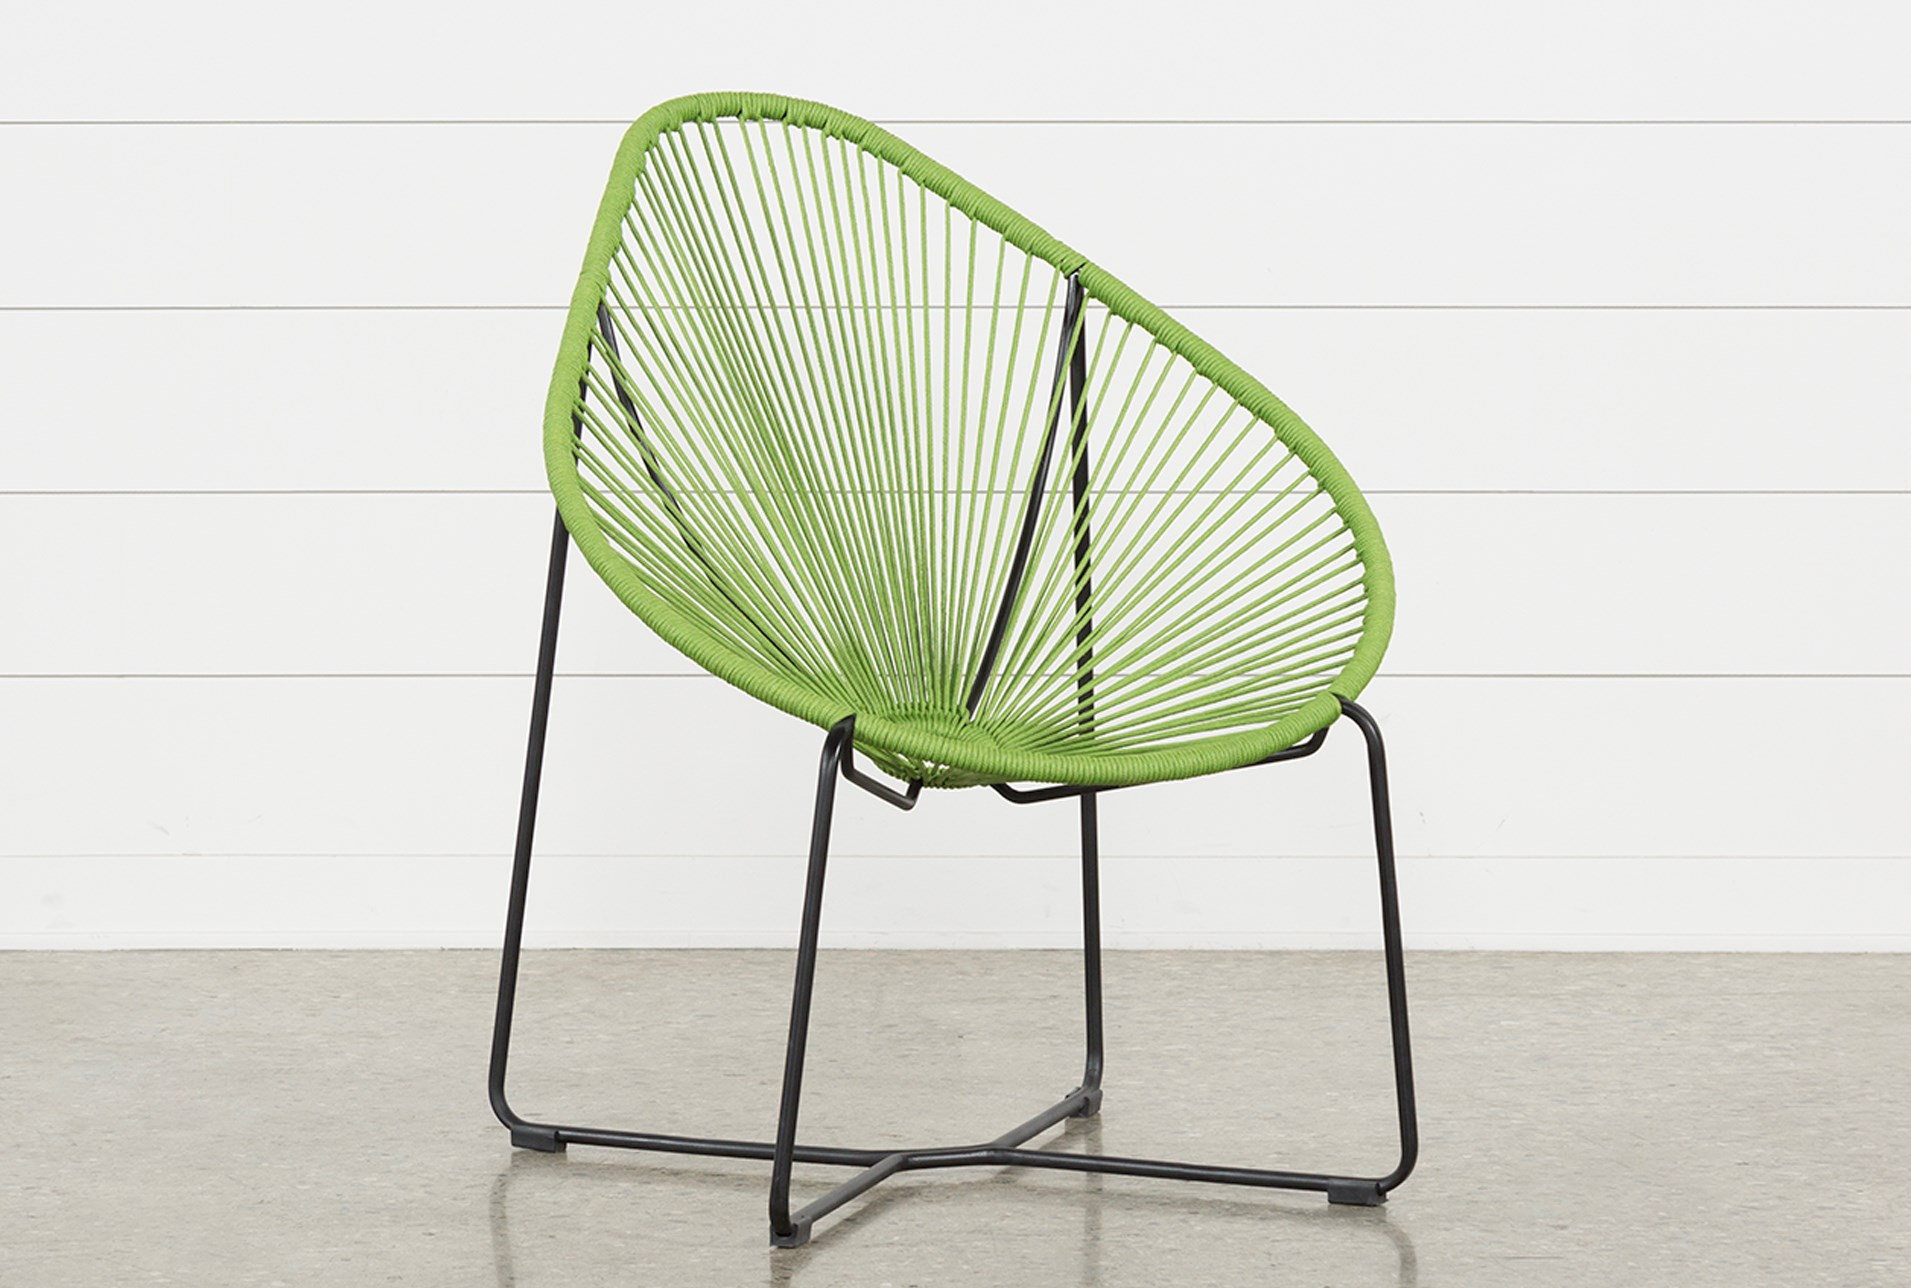 Outdoor acapulco green rope chair qty 1 has been successfully added to your cart